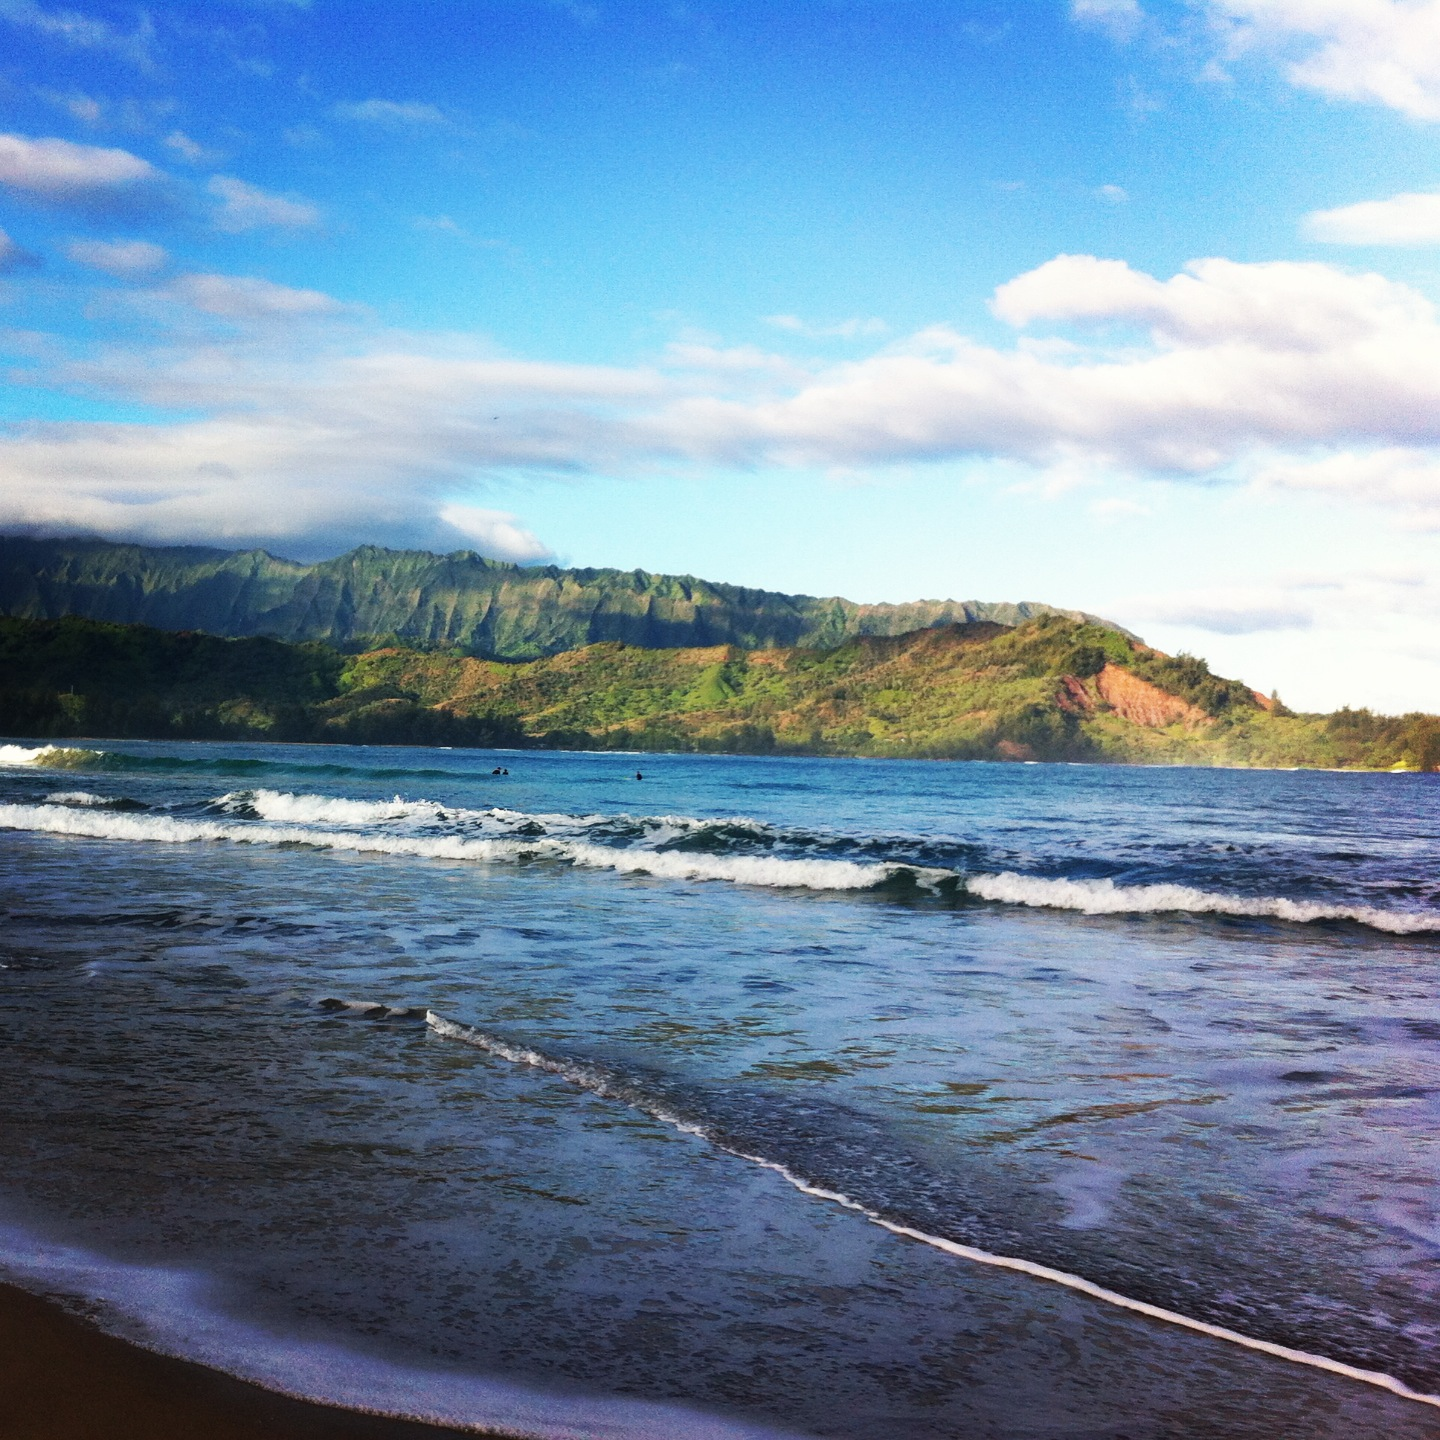 View across Hanalei bay from the beach.